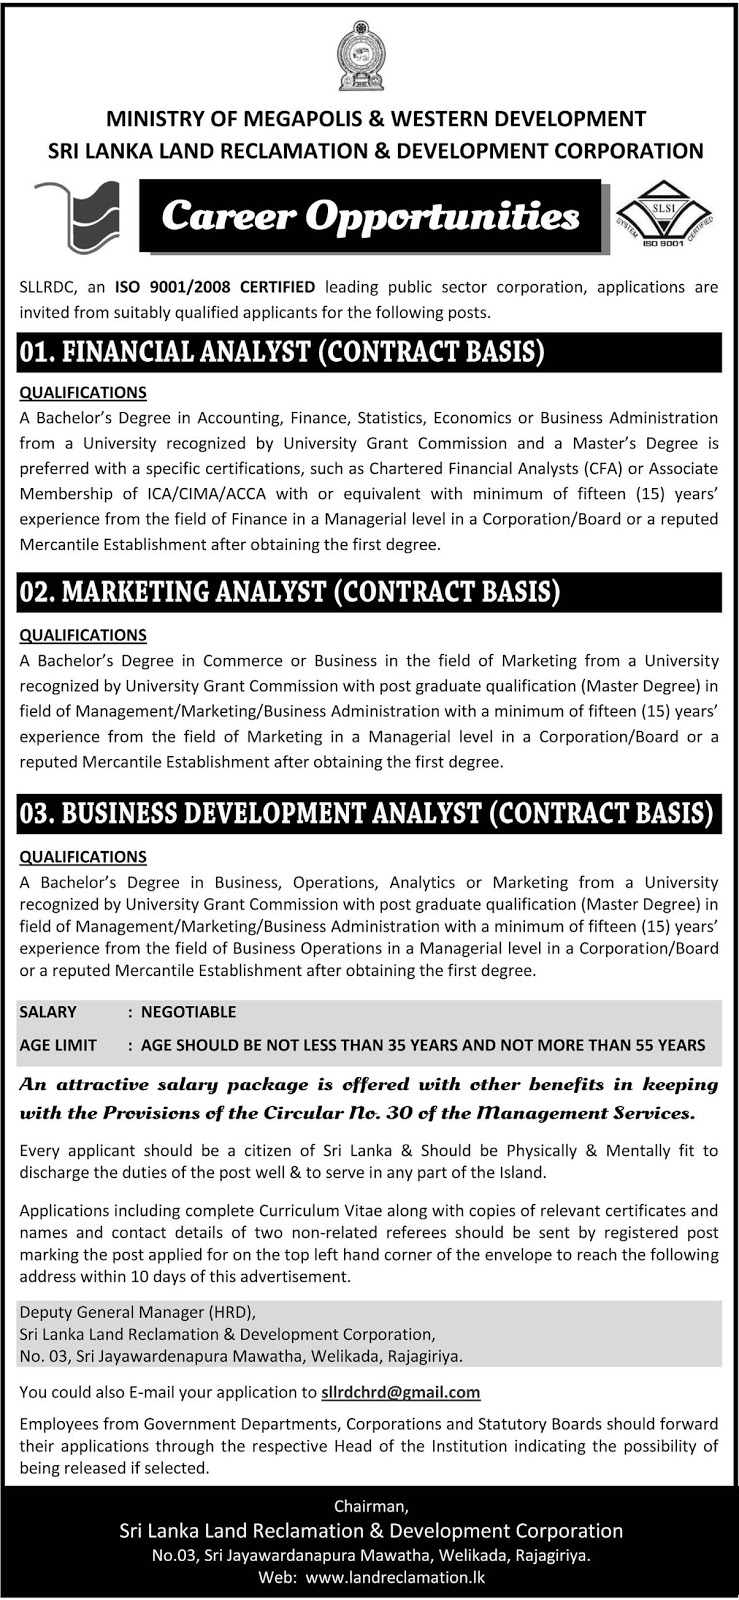 Vacancies – Financial Analyst – Marketing Analyst -Business Development Analyst - Sri Lanka Land Reclamation & Development Corporation - Ministry of Megapolis & Western Development